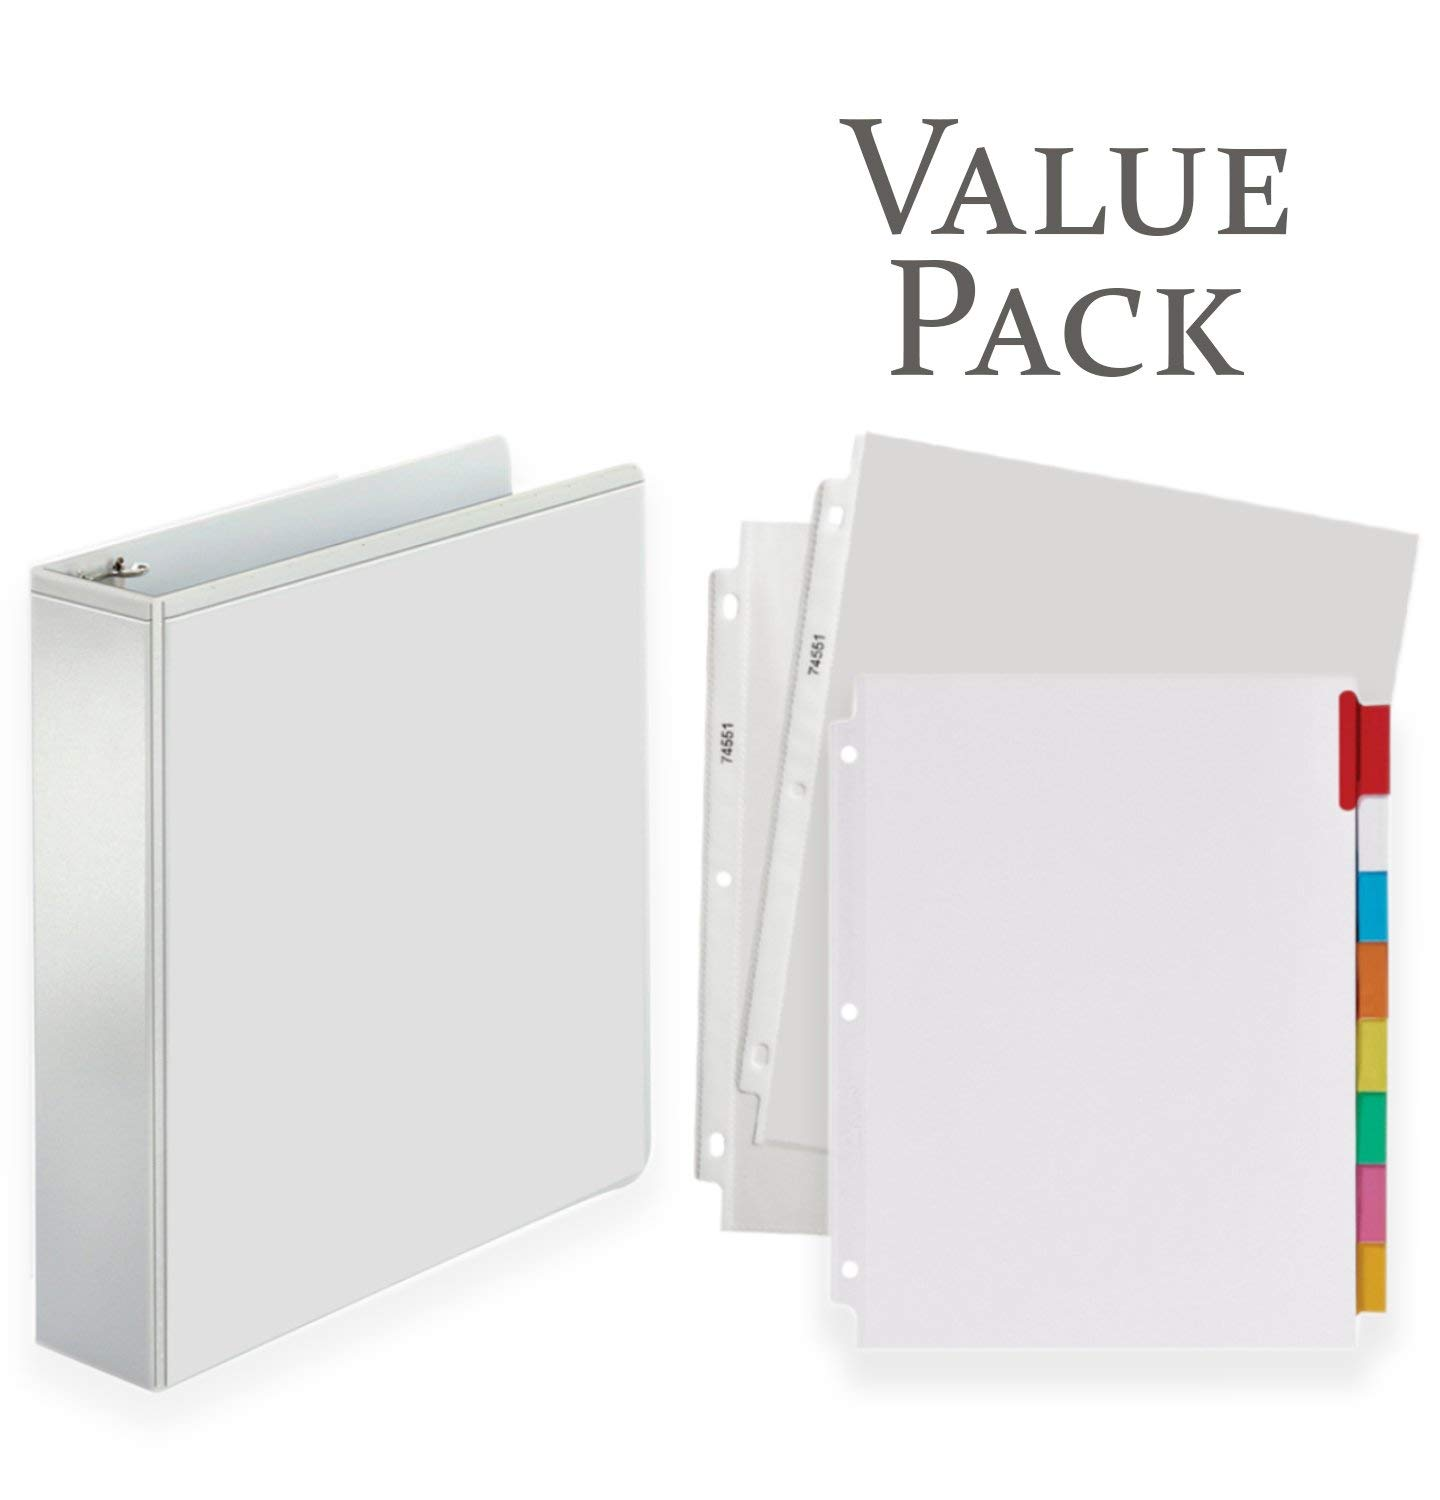 3-Ring Binder, Presentation View Binders - With 20 Top-Loading Poly Clear Sheet Protectors - and Big Tab Insertable Extra Wide Dividers, 8 Multi-color Tabs - VALUE PACK (2 Inch, White)